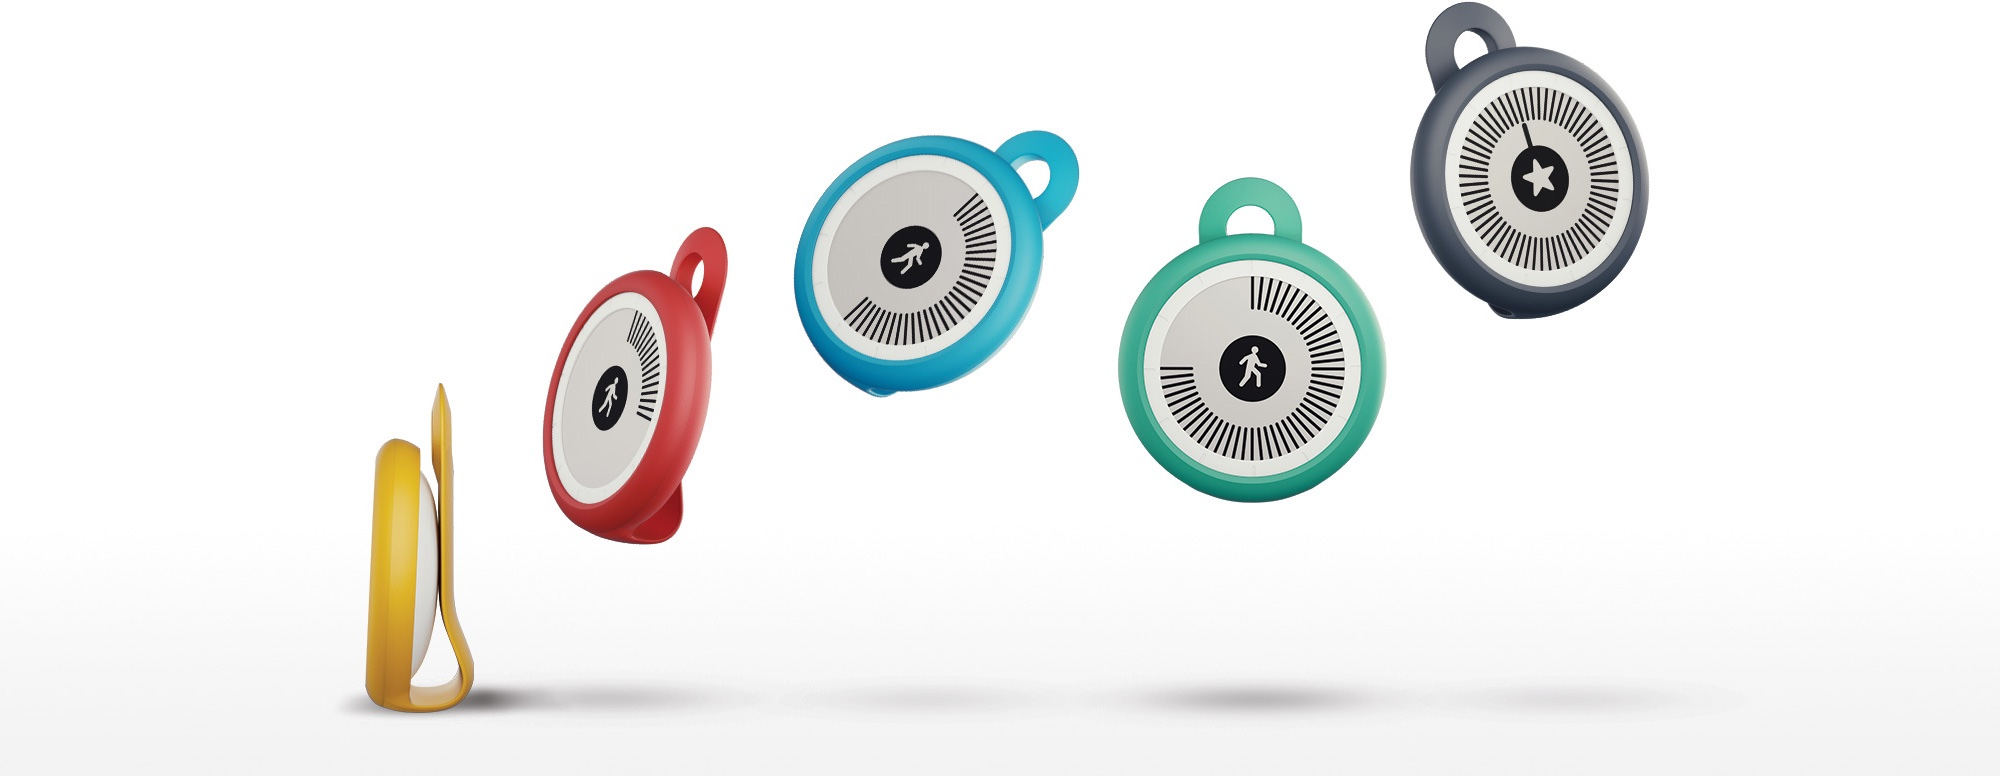 Go | Withings